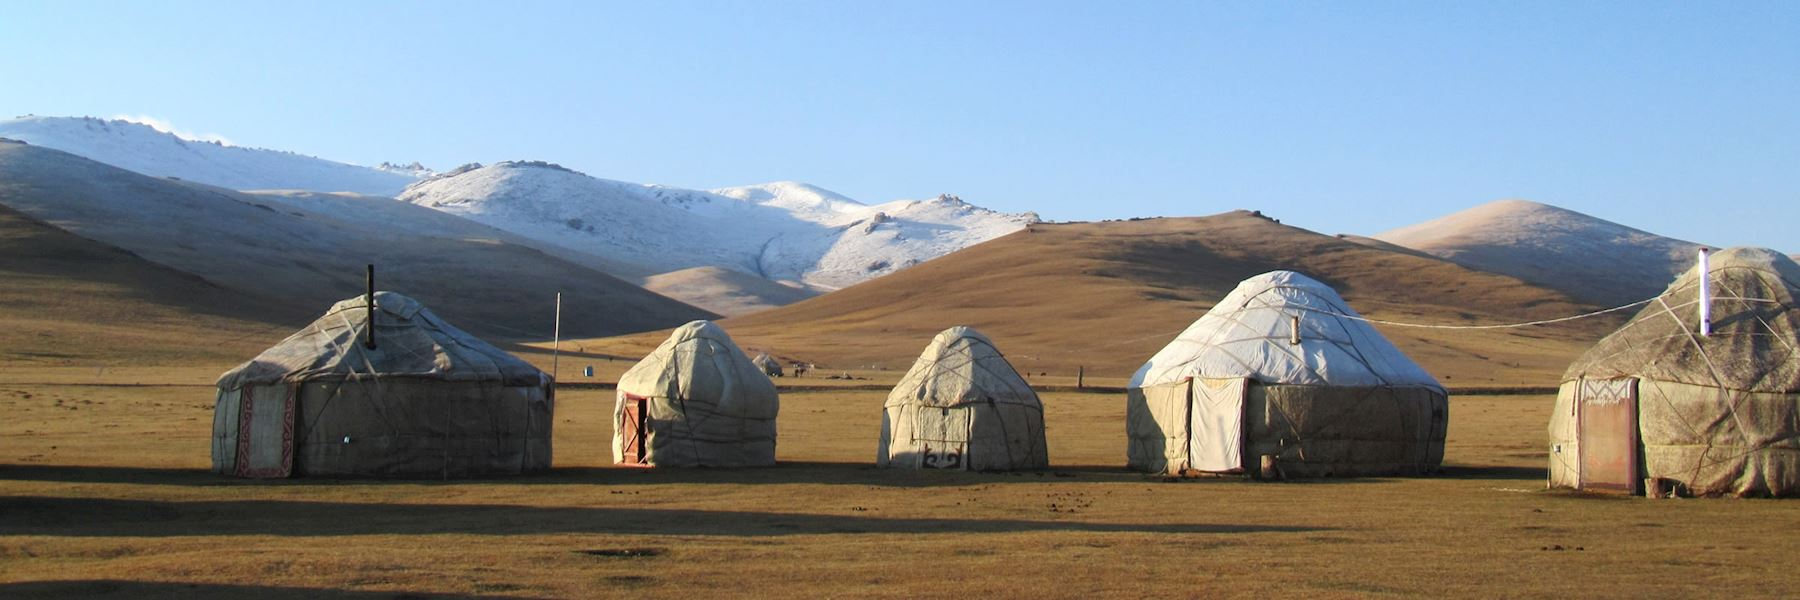 Accommodation in Kyrgyzstan